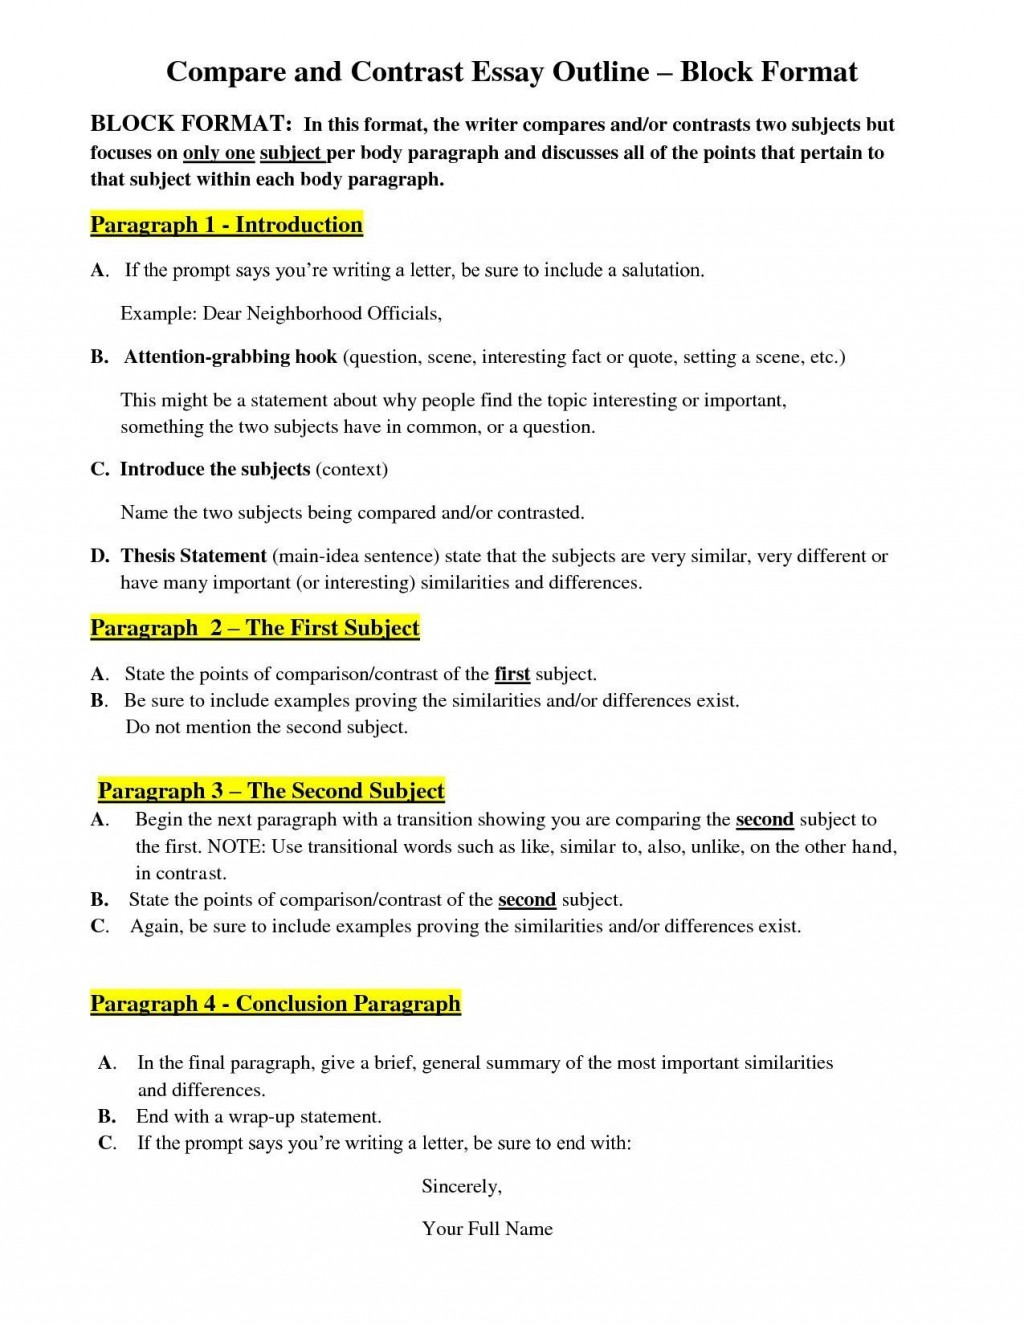 007 Compare And Contrast Essay Frightening Sample 4th Grade Introduction Paragraph Ideas Large